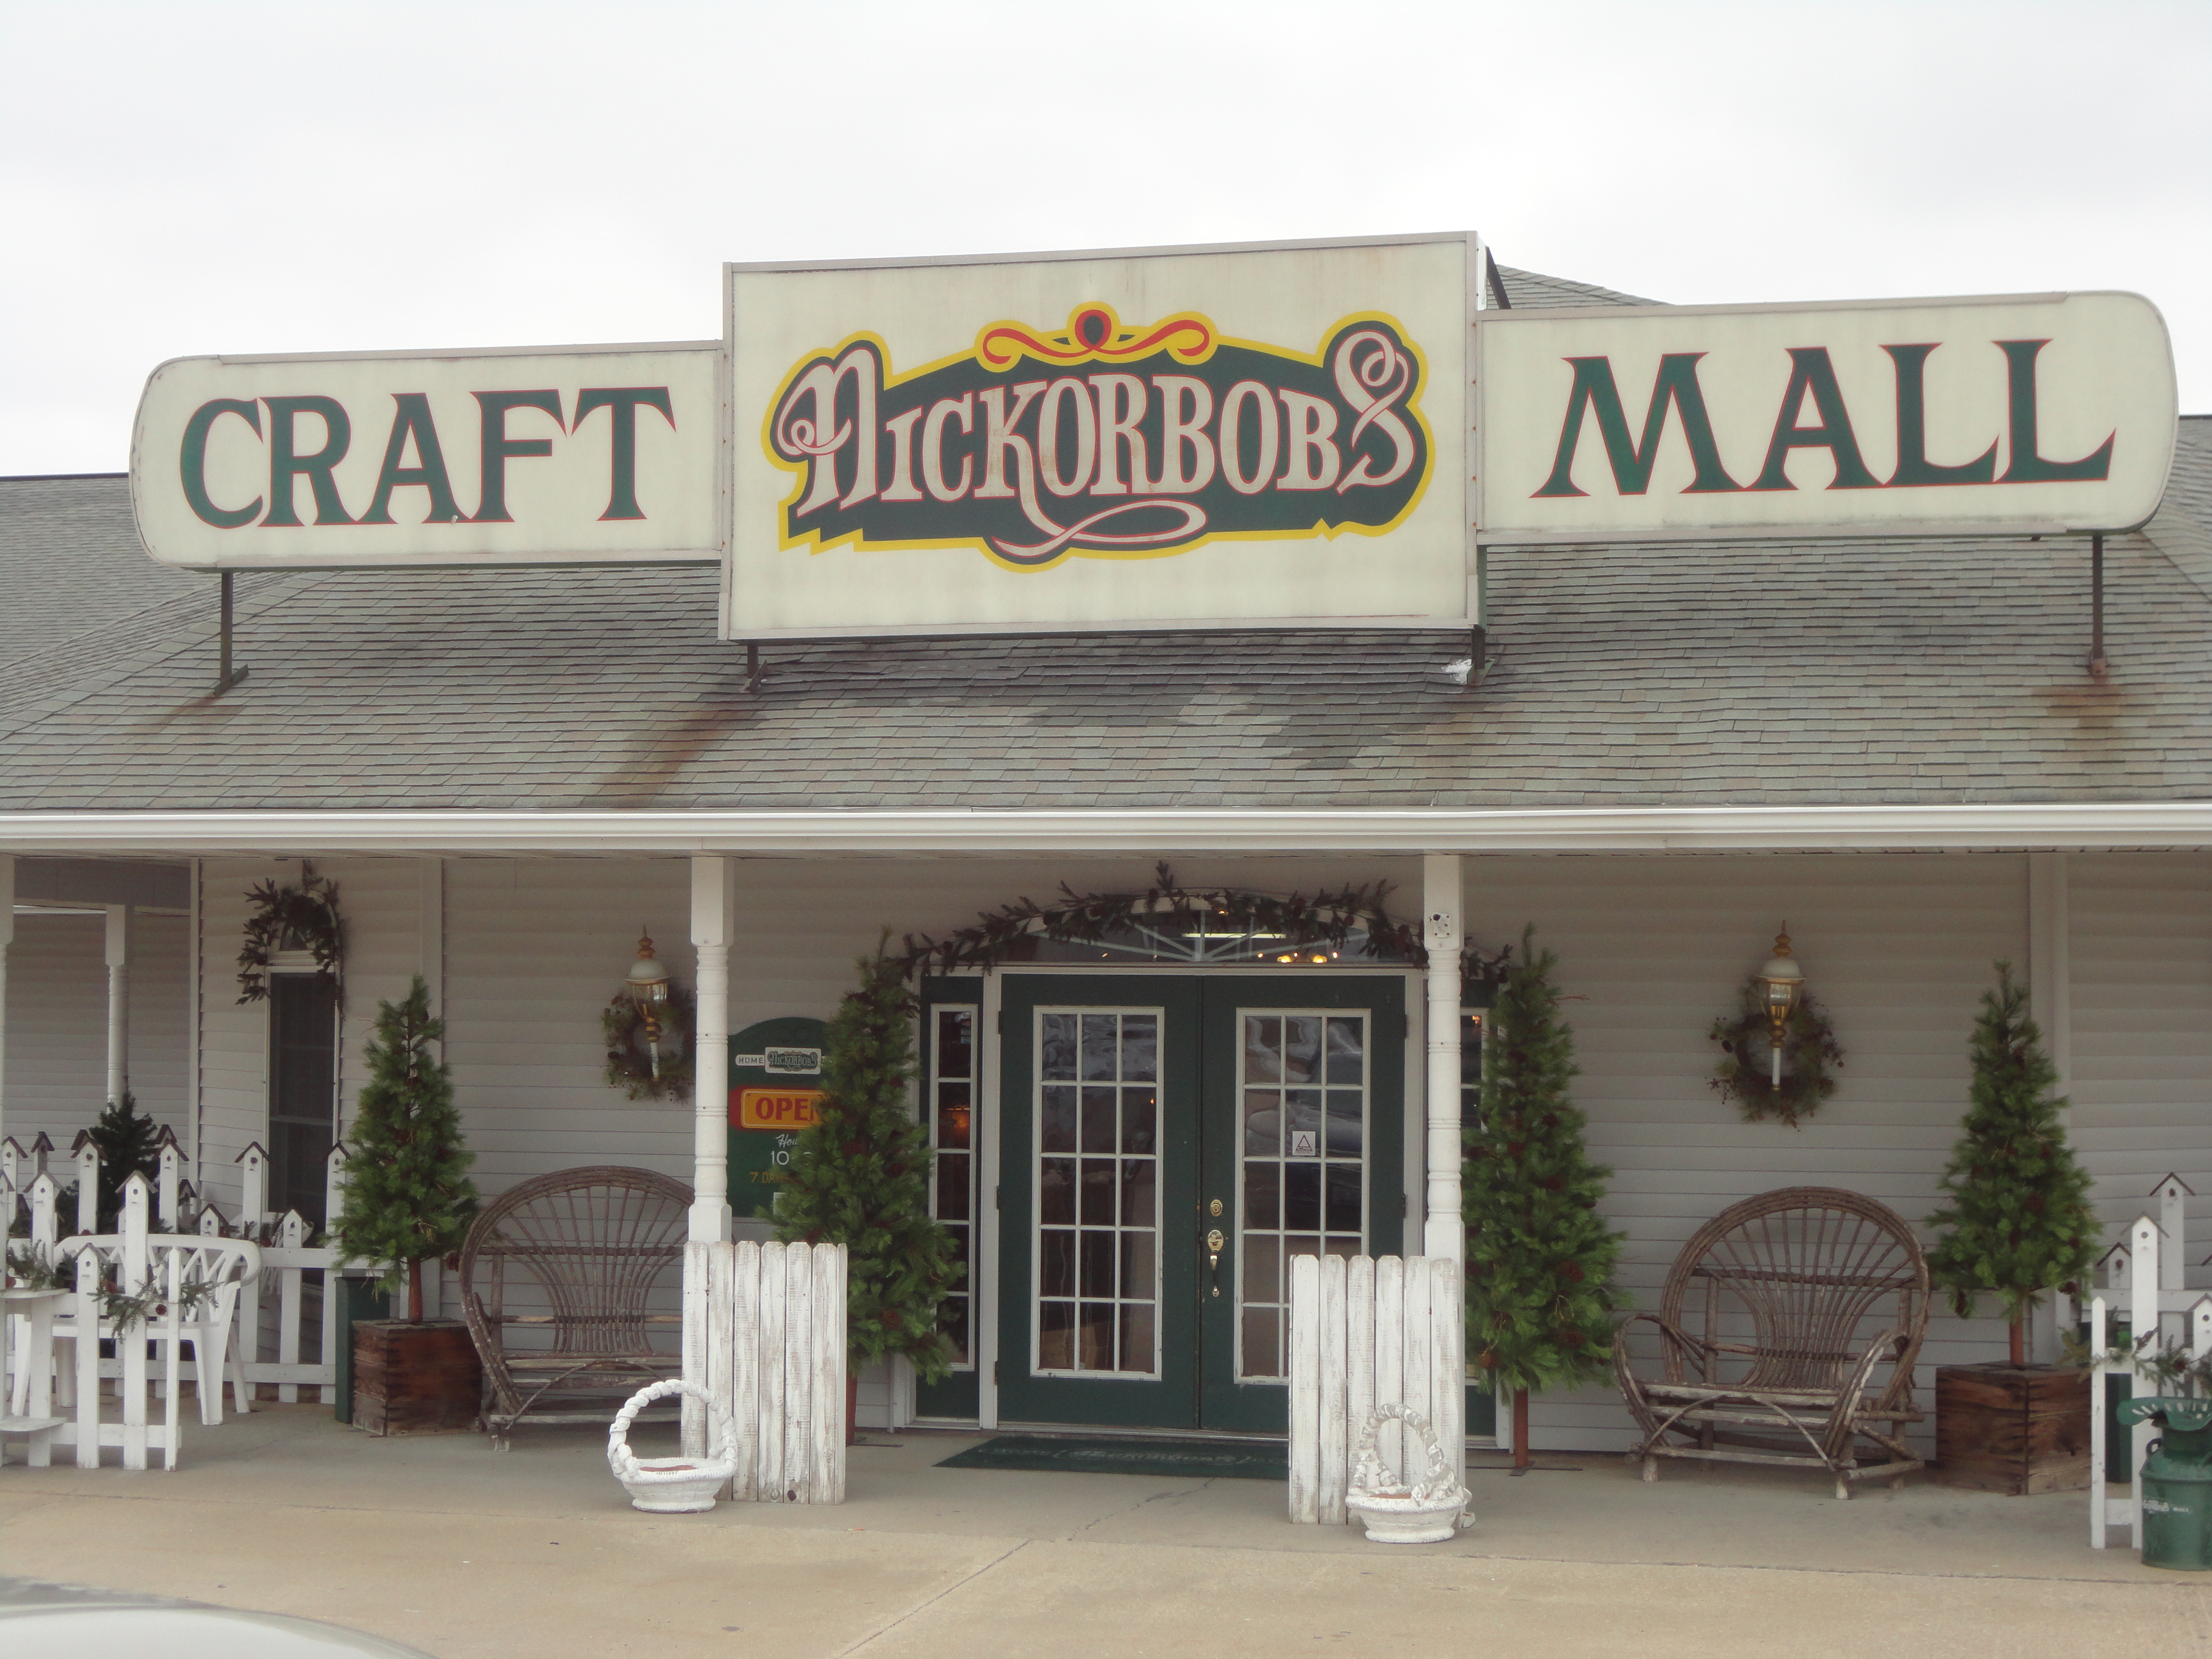 Nickorbobs Craft Mall- Think Spring!